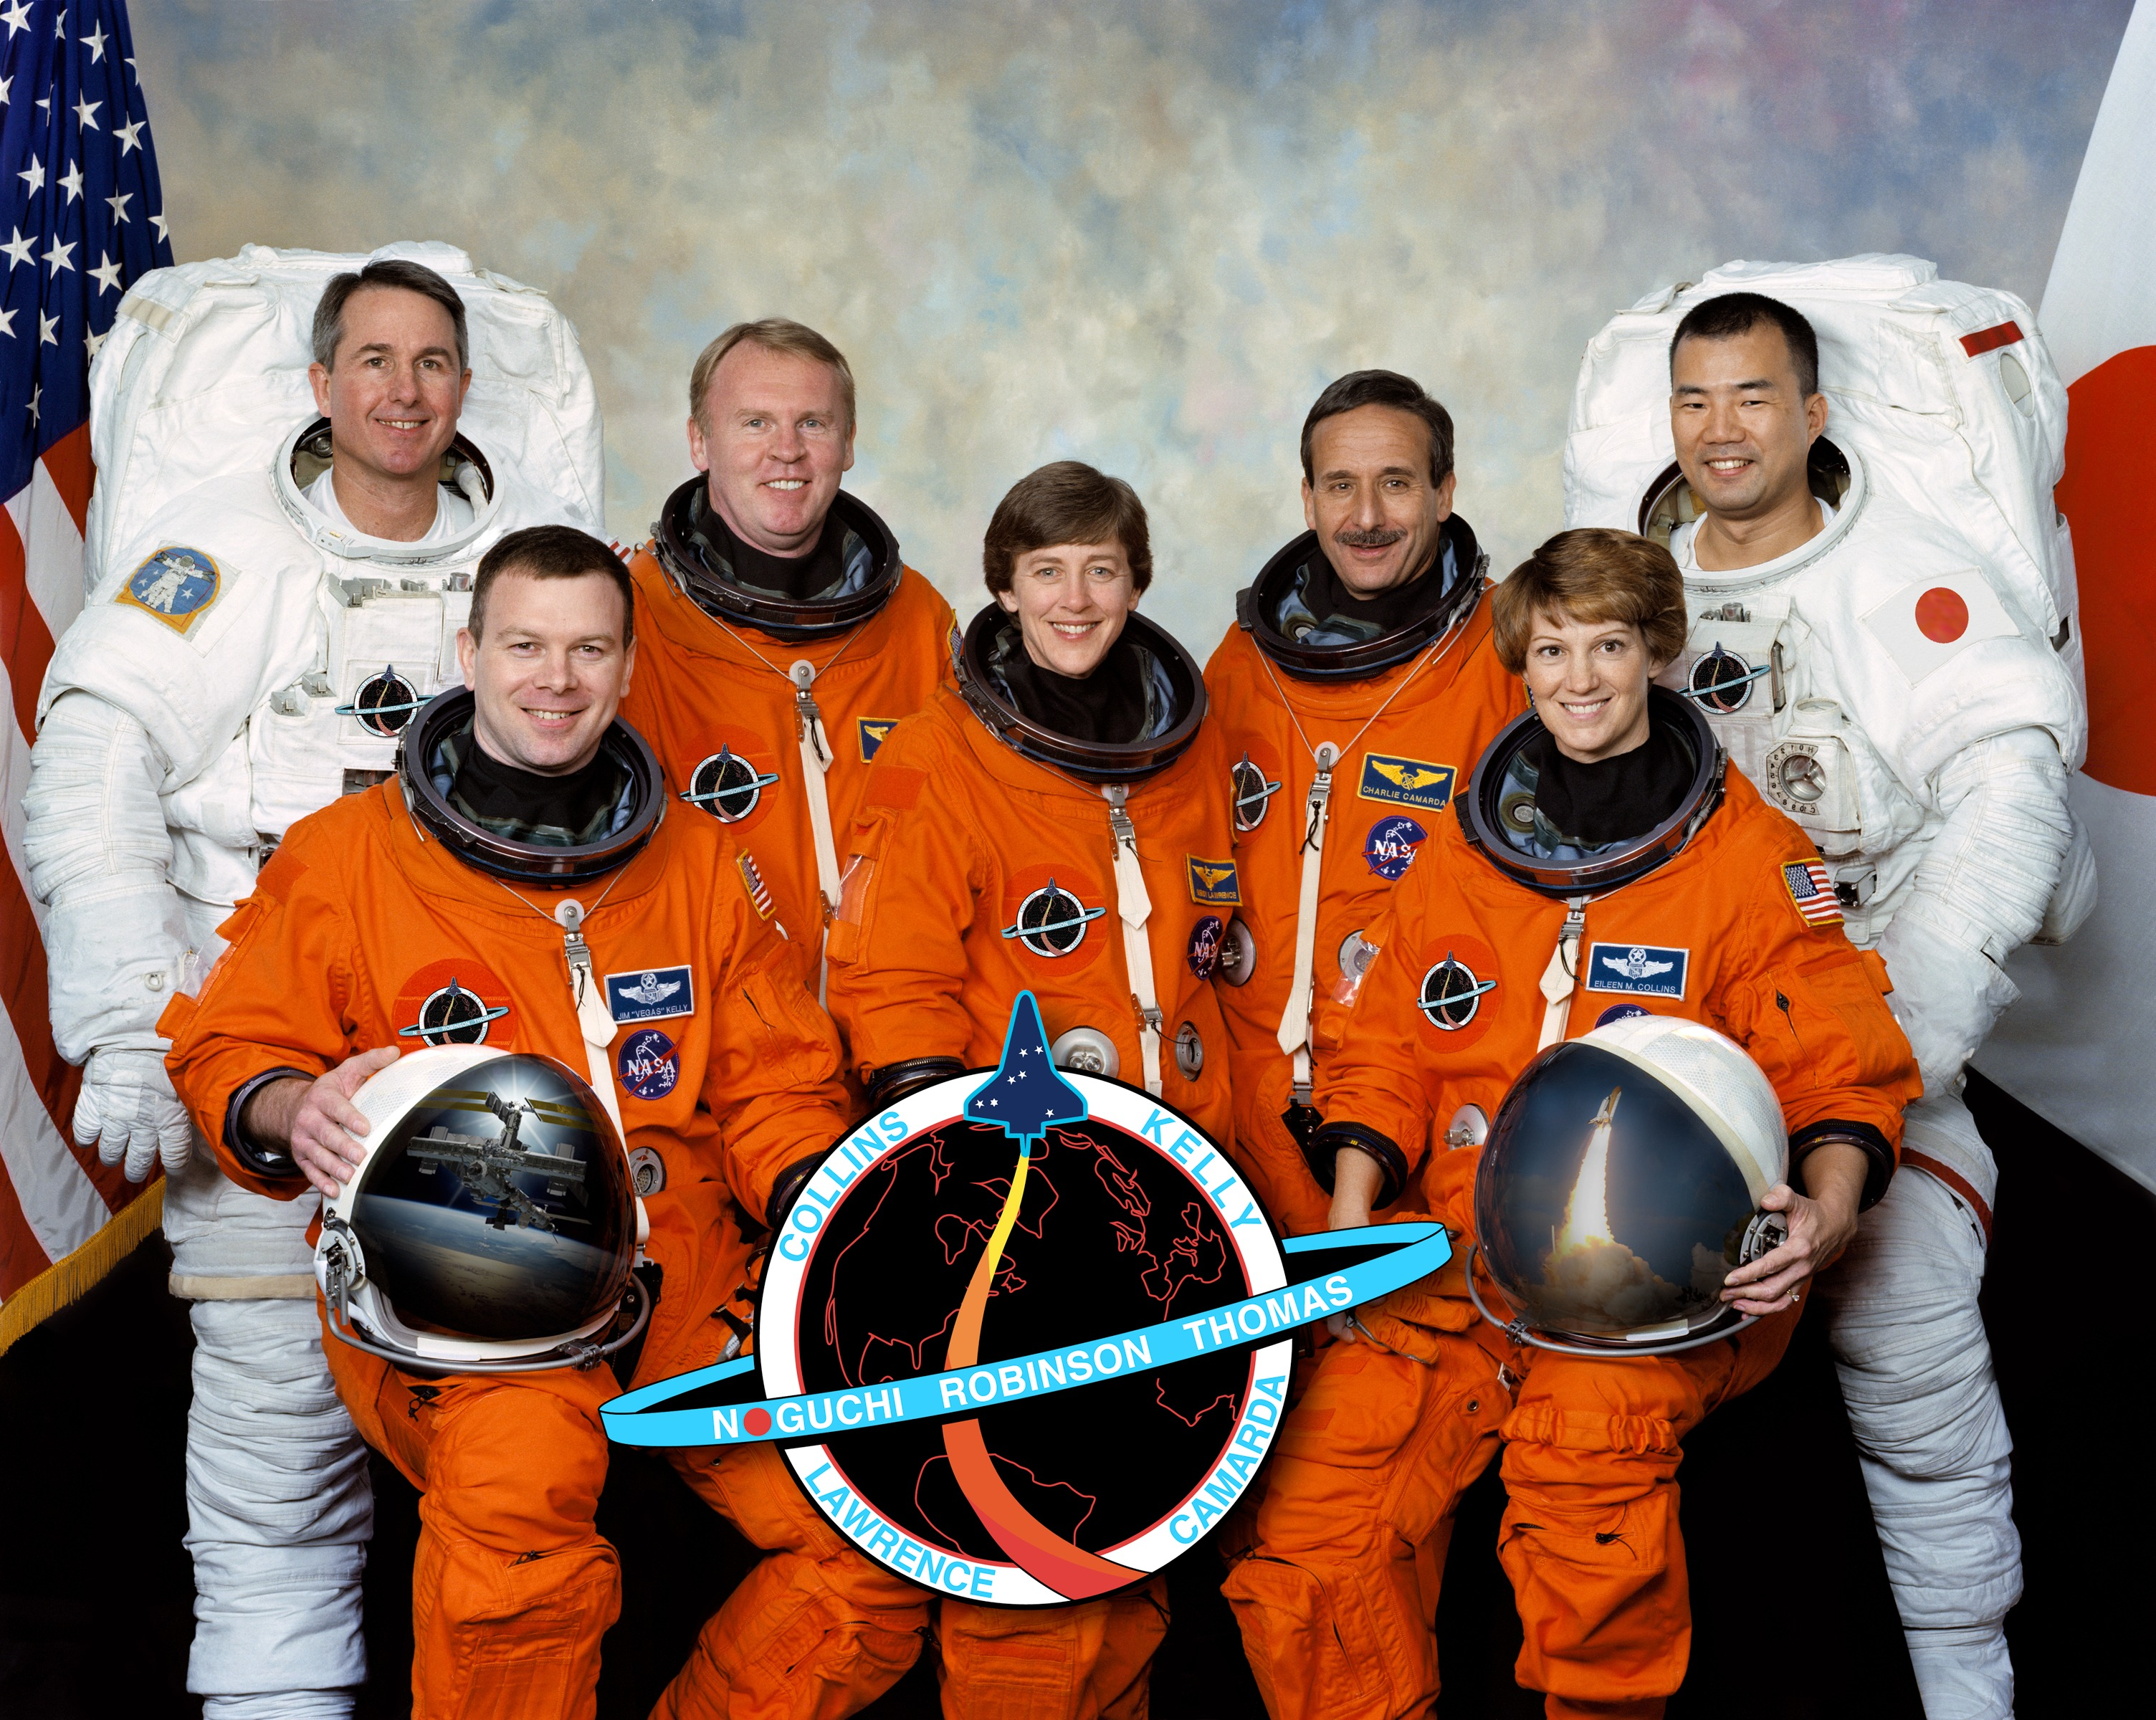 Challenger Crew Nasa Astronaut Pics About Space